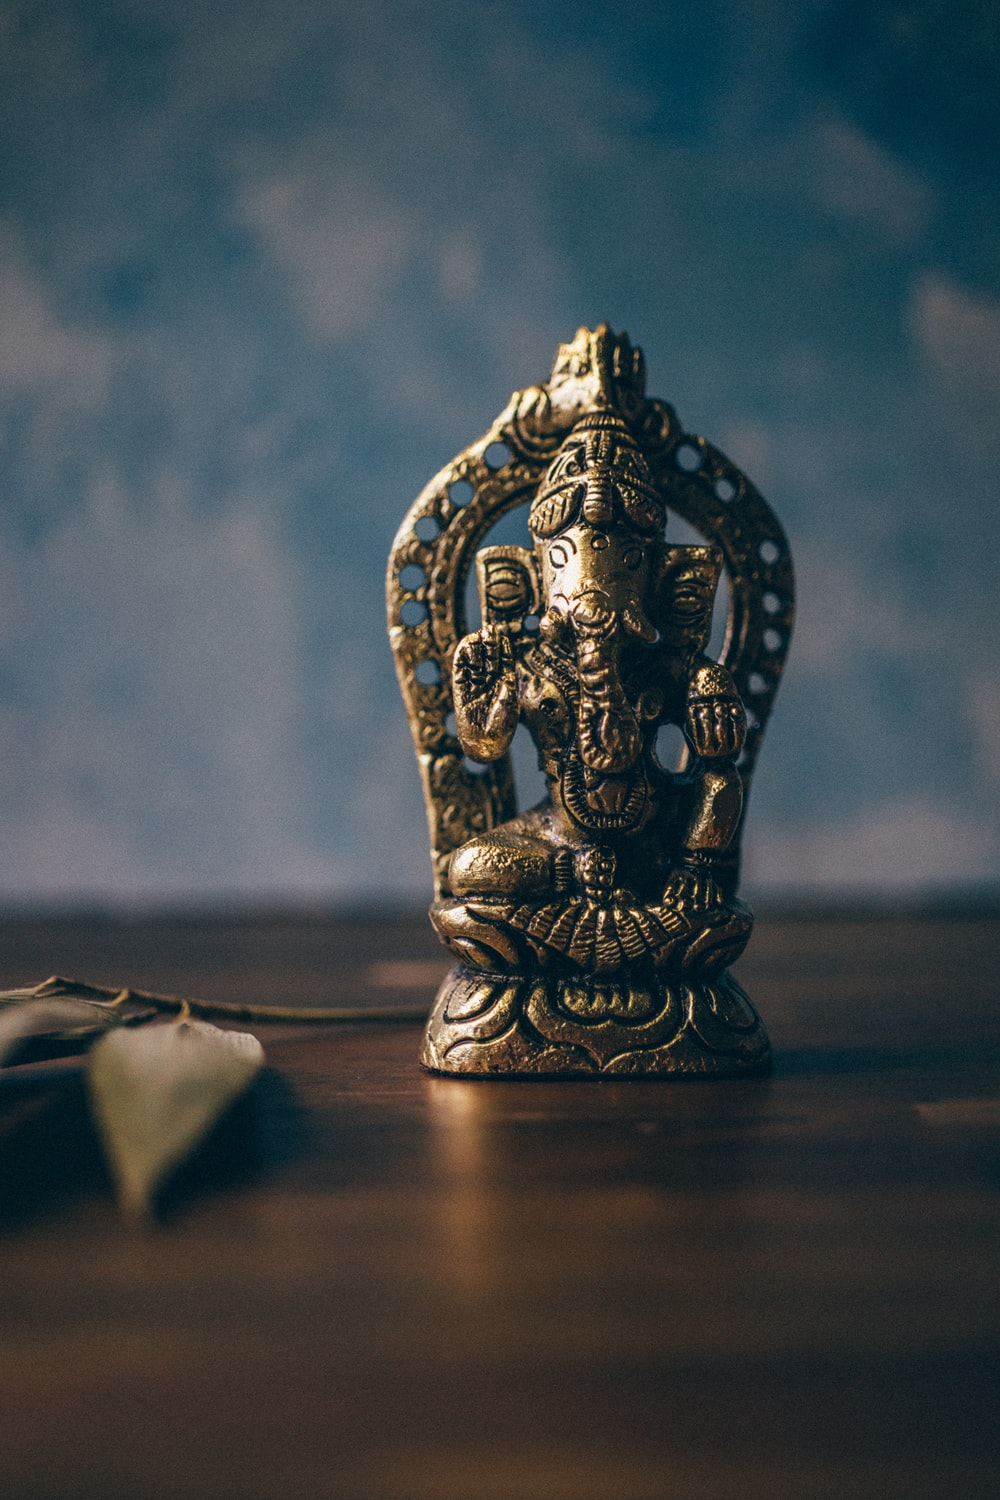 Ganesha figurine on brown surface